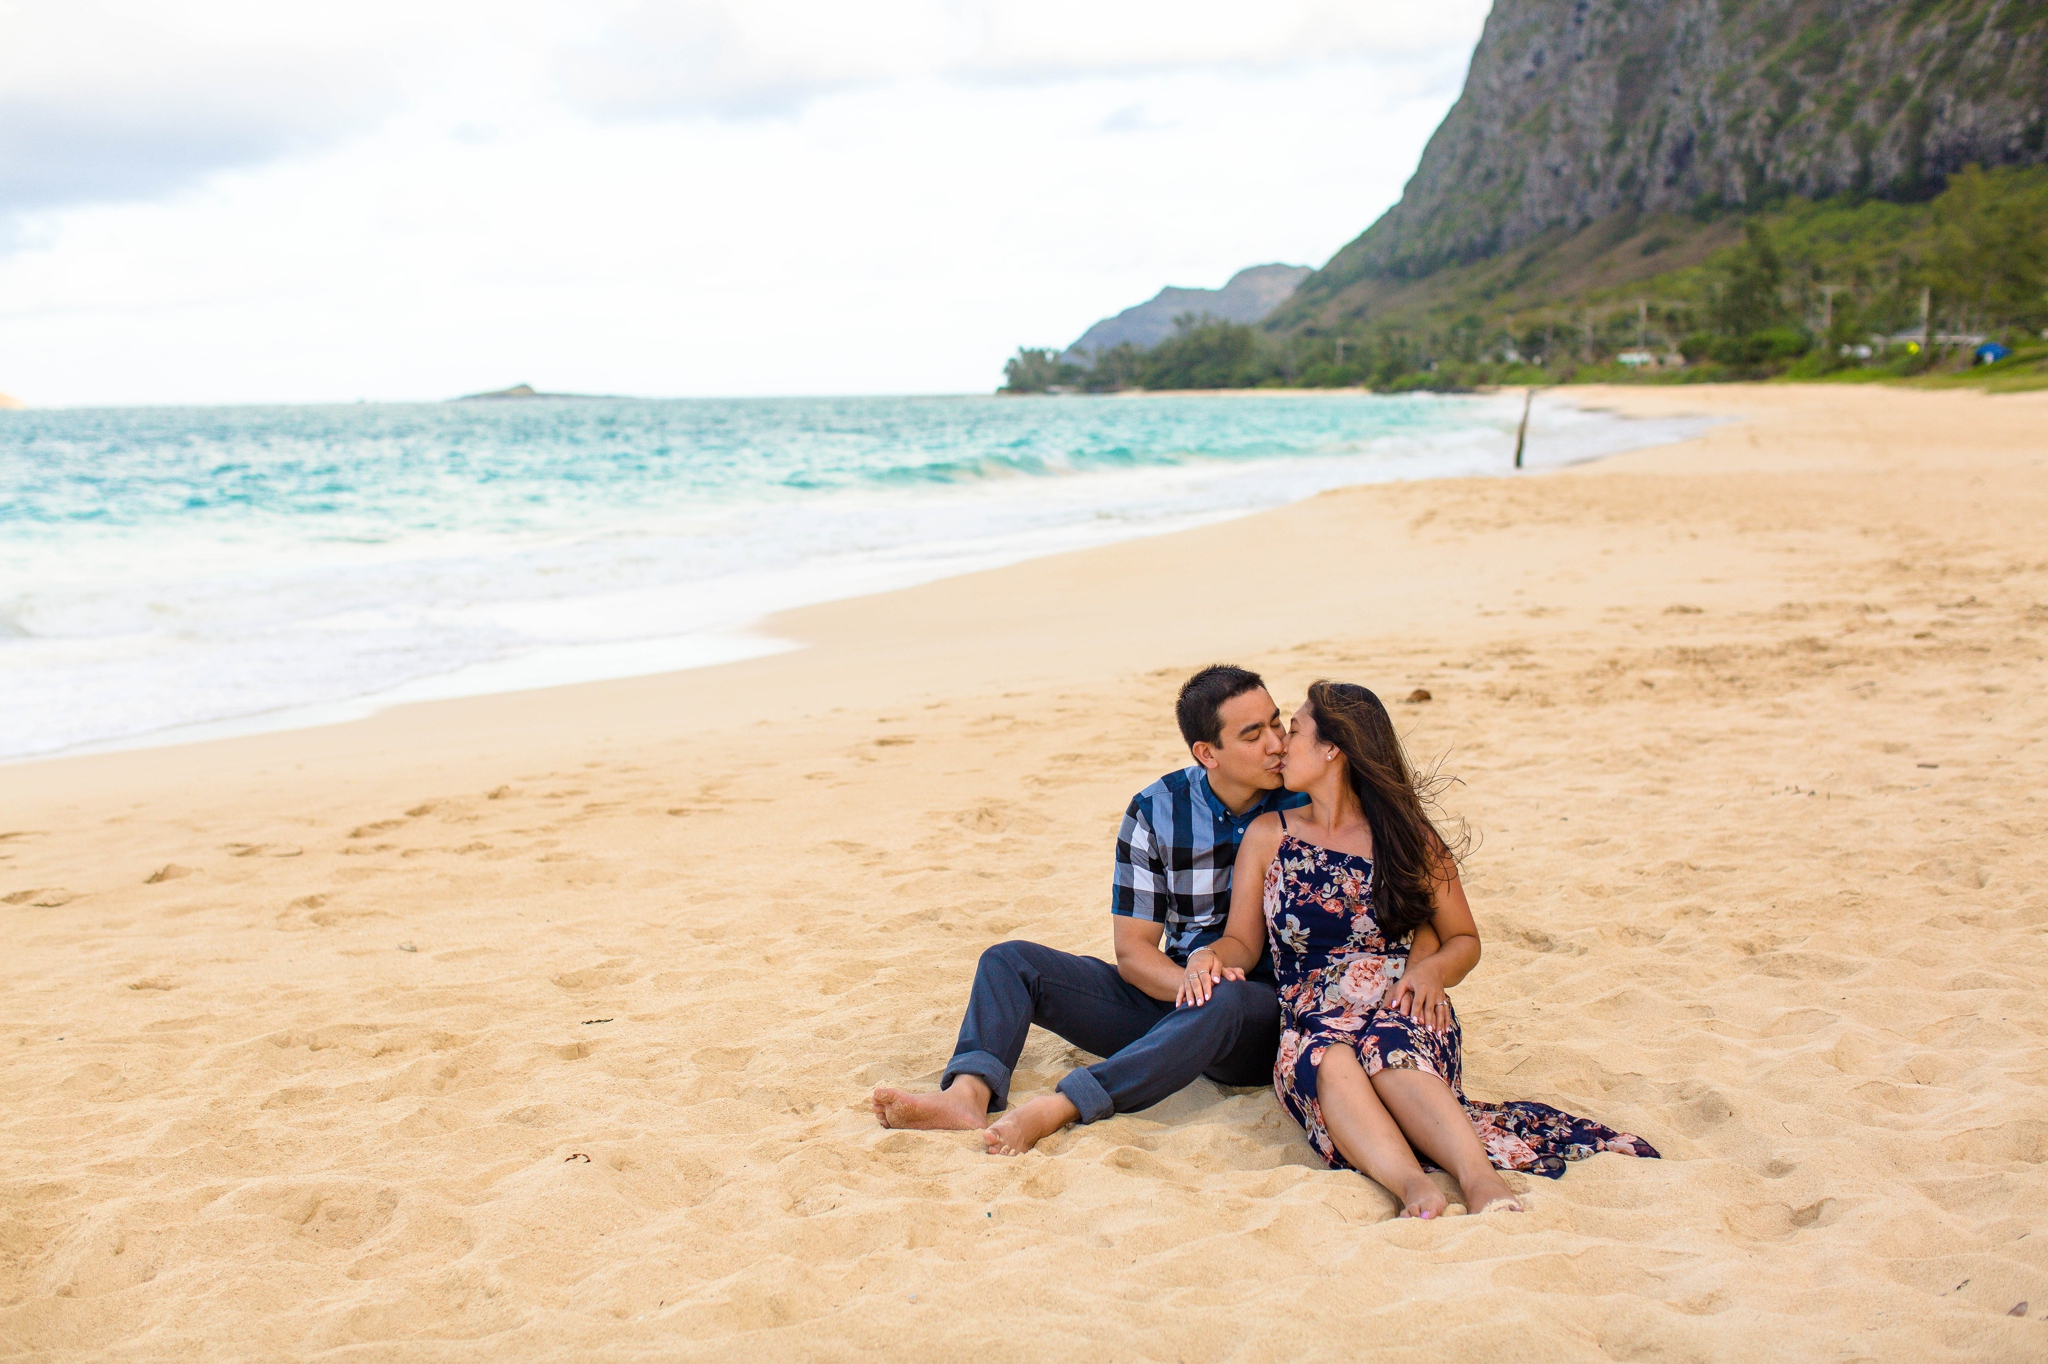 engagement photography session at waimanalo beach park - couple is sitting in the sand with the ocean and the mountains in the back ground - oahu hawaii wedding photographer